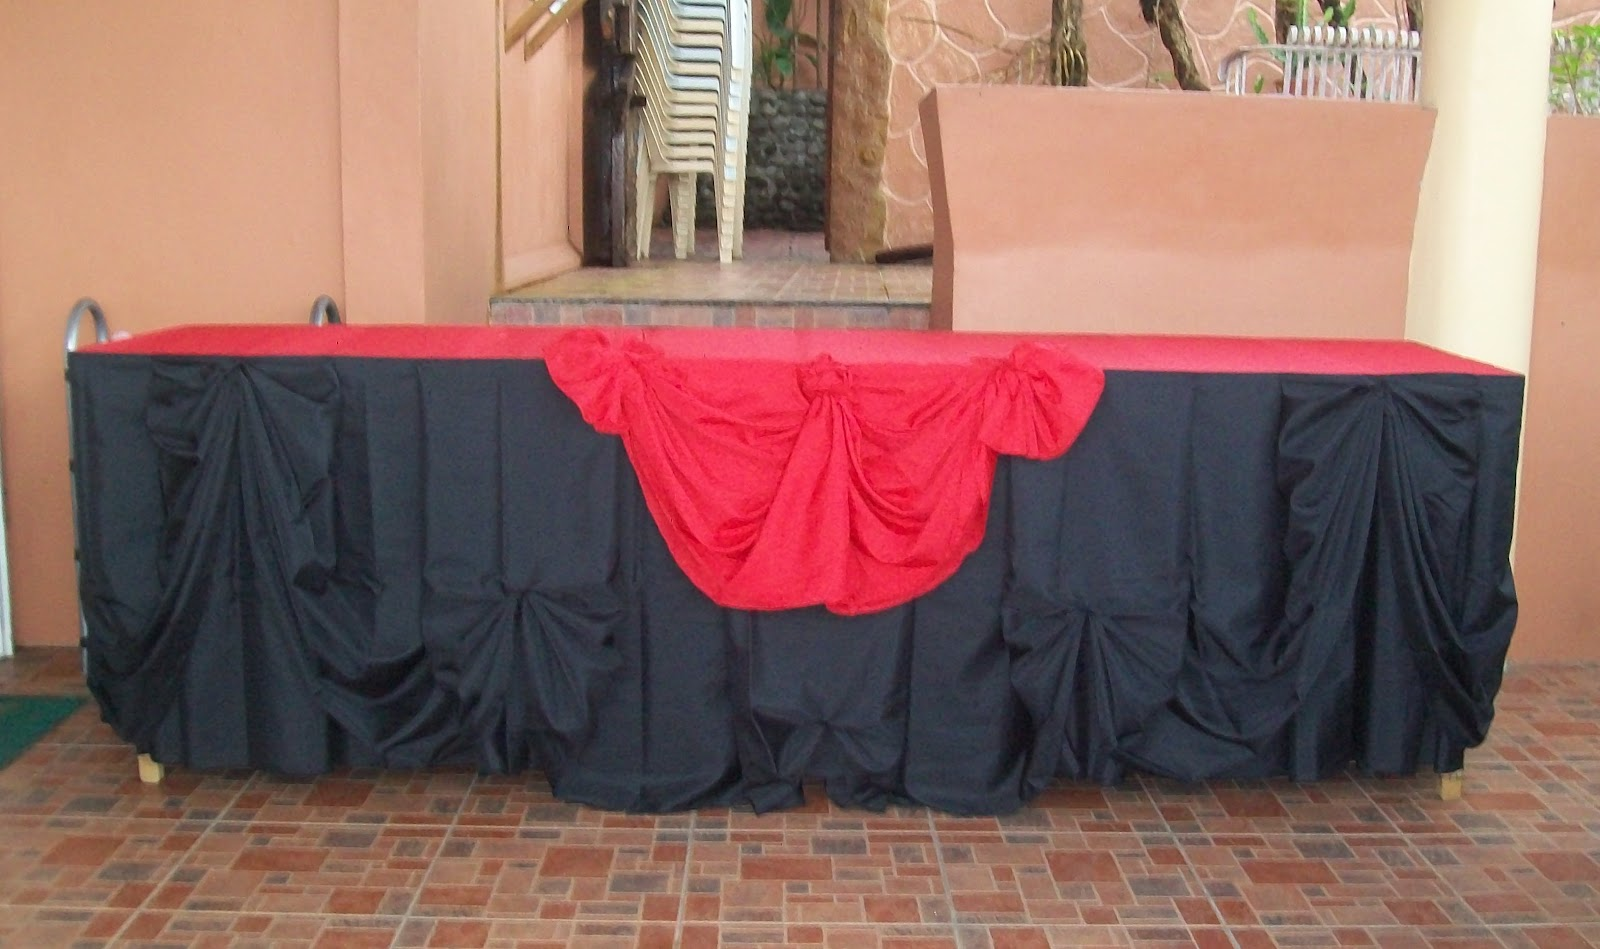 Skirting for your buffet table van and louise catering skirting for your buffet table watchthetrailerfo